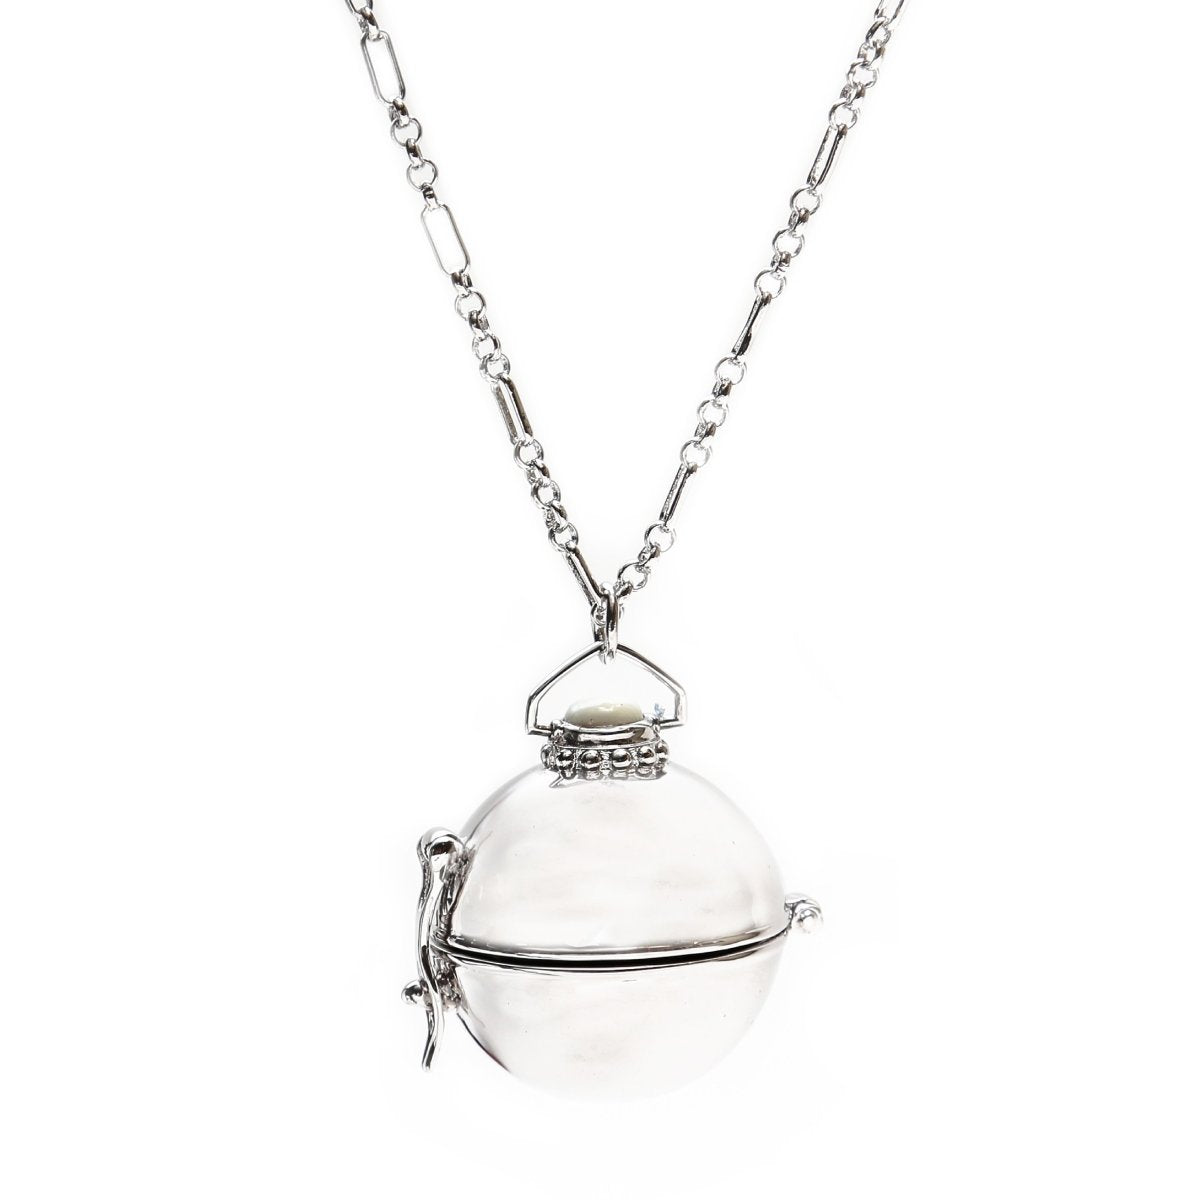 THE RESE NECKLACE LOCKET SILVER - C.J.ROCKER